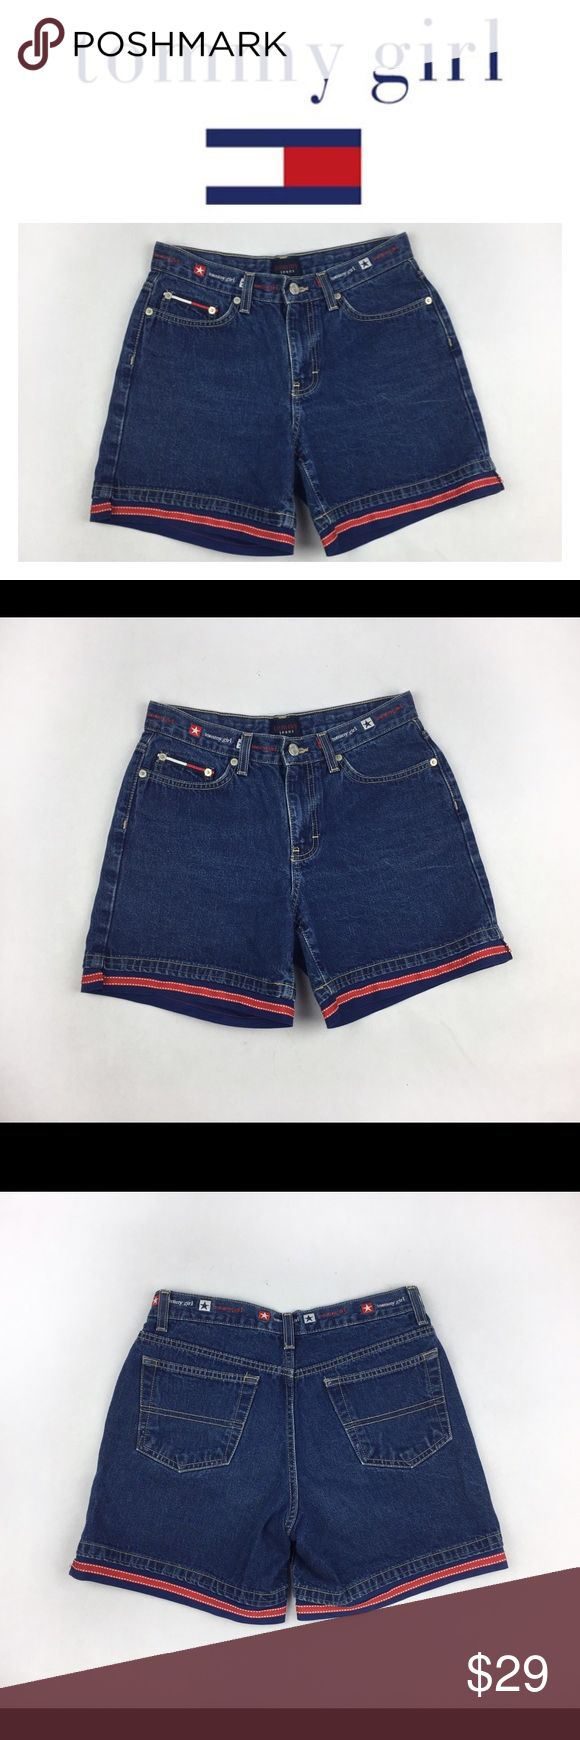 TOMMY HILFIGER TOMMY GIRL VINTAGE SHORTS SZ5 Hello 90s! These shorts are so ?$&! Cool! Tommy Hilfiger Tommy girl vintage denim shorts, with super cute white, blue and red details! No holes or stains. Questions? Ask me! Tommy Hilfiger Shorts